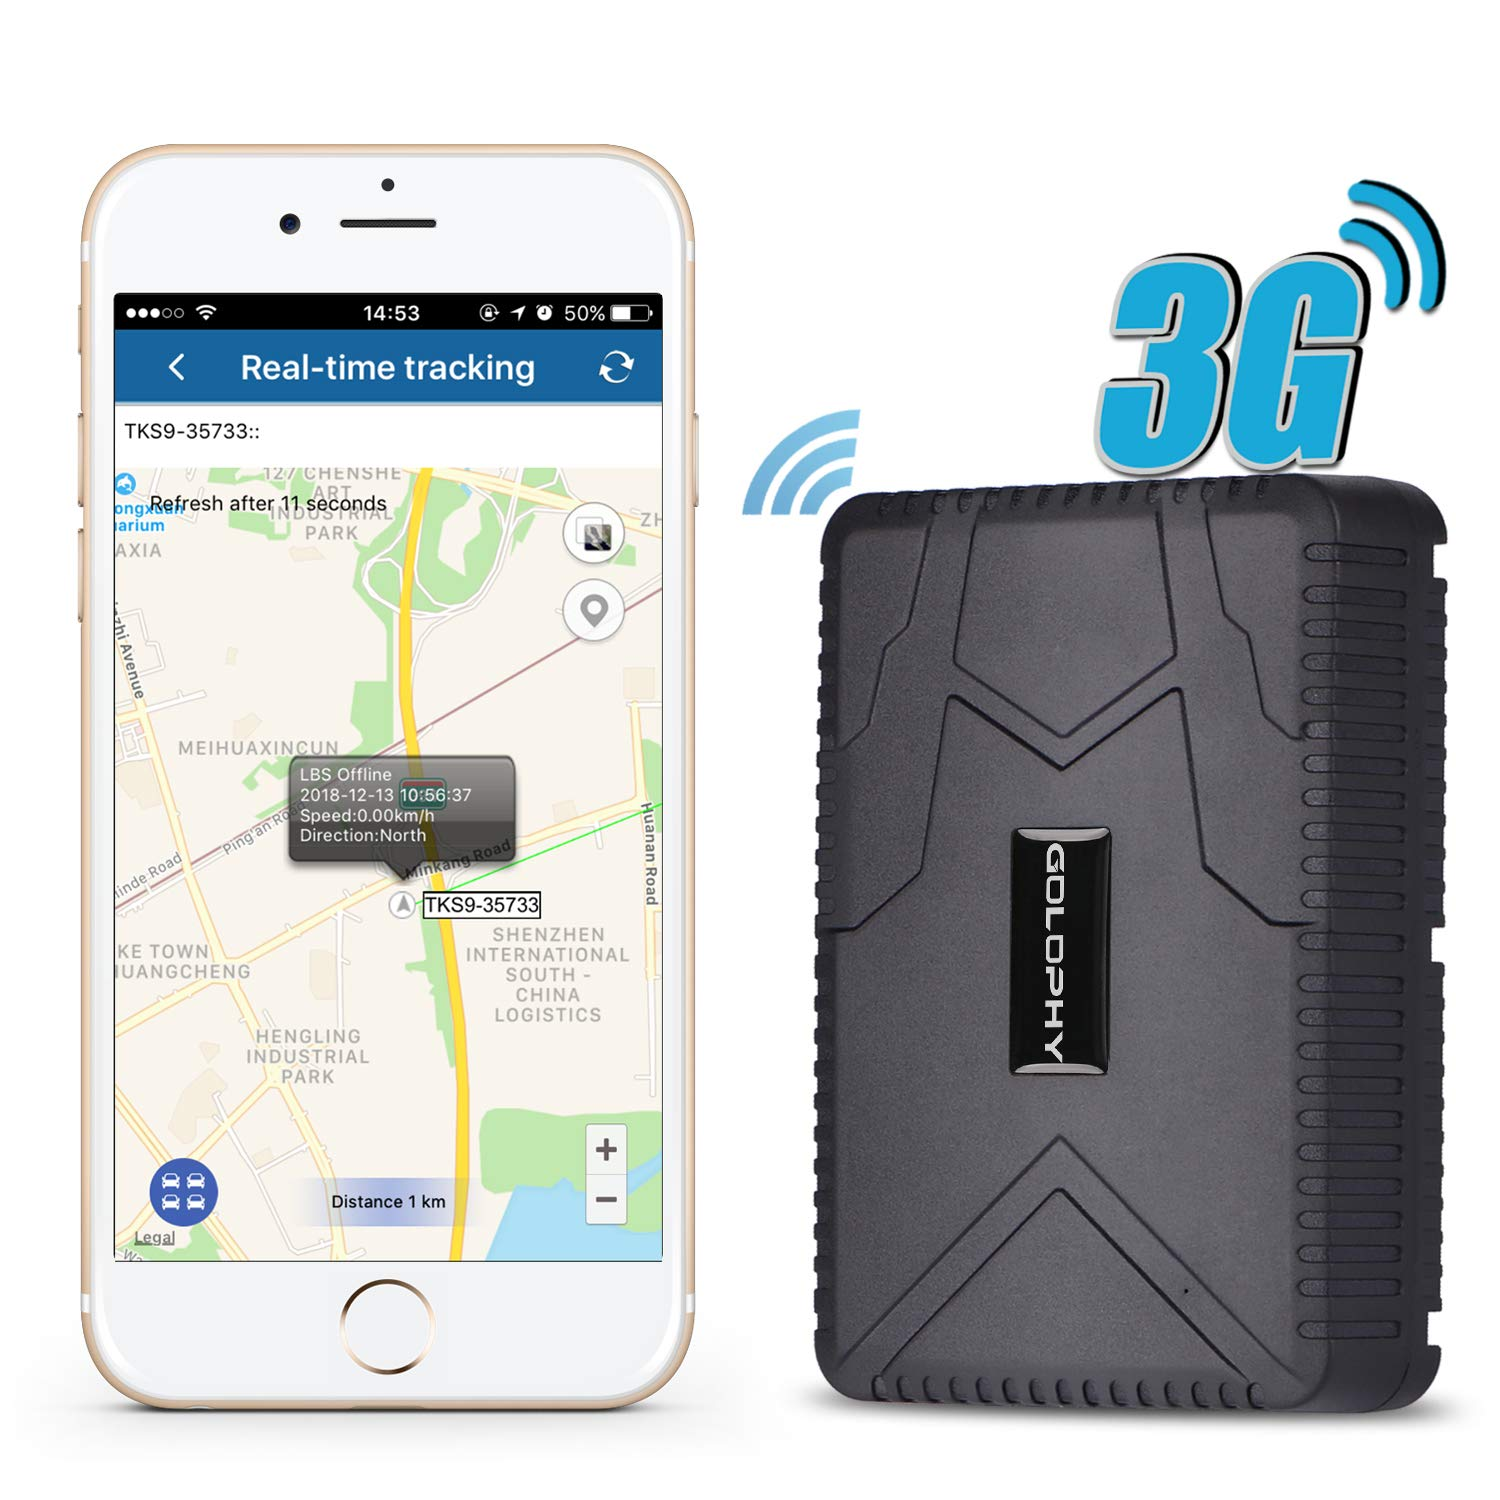 Car GPS Tracker-Real Time Car Tracker Locator Device Voice Monitor for Car Truck Vehicle Van Strong Magnet Waterproof Anti-Lost Falling Alarm Geo-Fence Remove Alarm 10000mAh